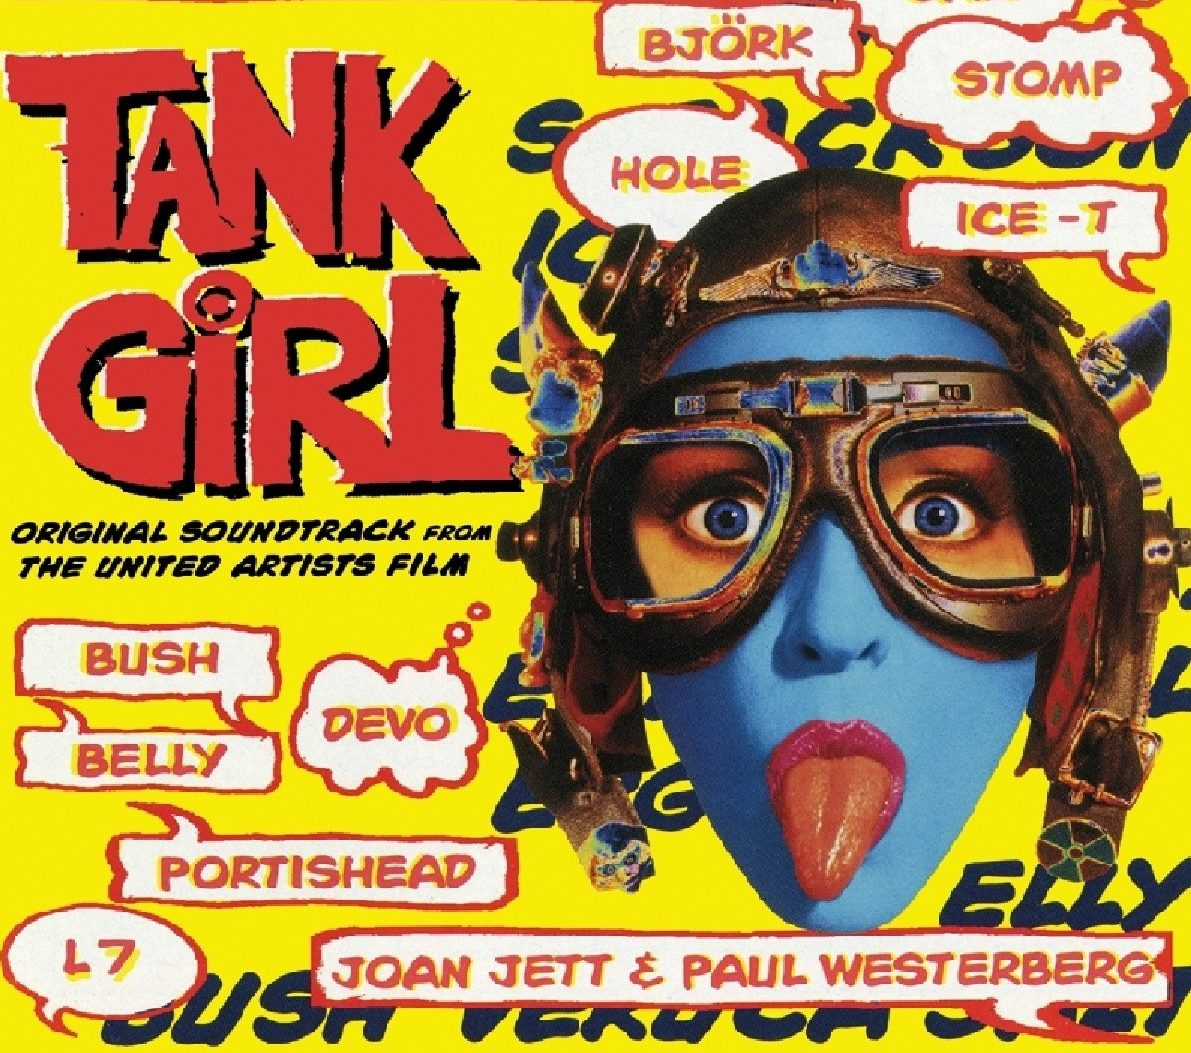 81Nt75hrrqL. SL1200 e1610114667481 20 Things You Never Knew About The Cult Classic Movie Tank Girl